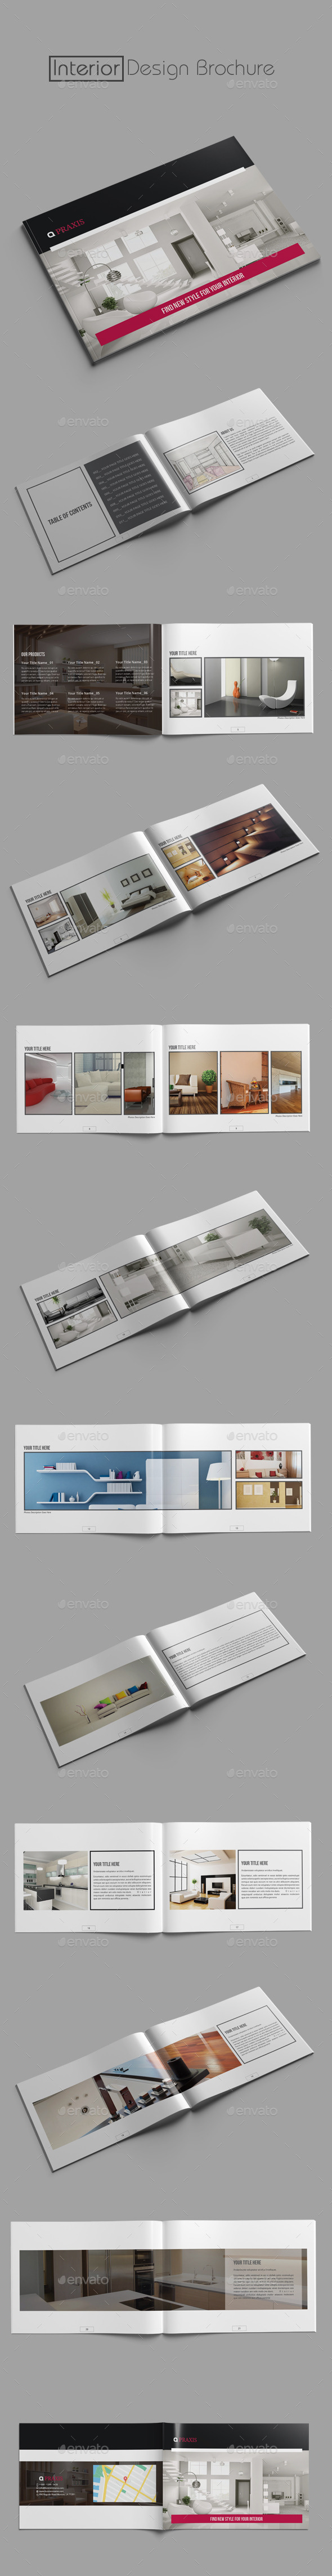 GraphicRiver Interior Design Brochure 10877172